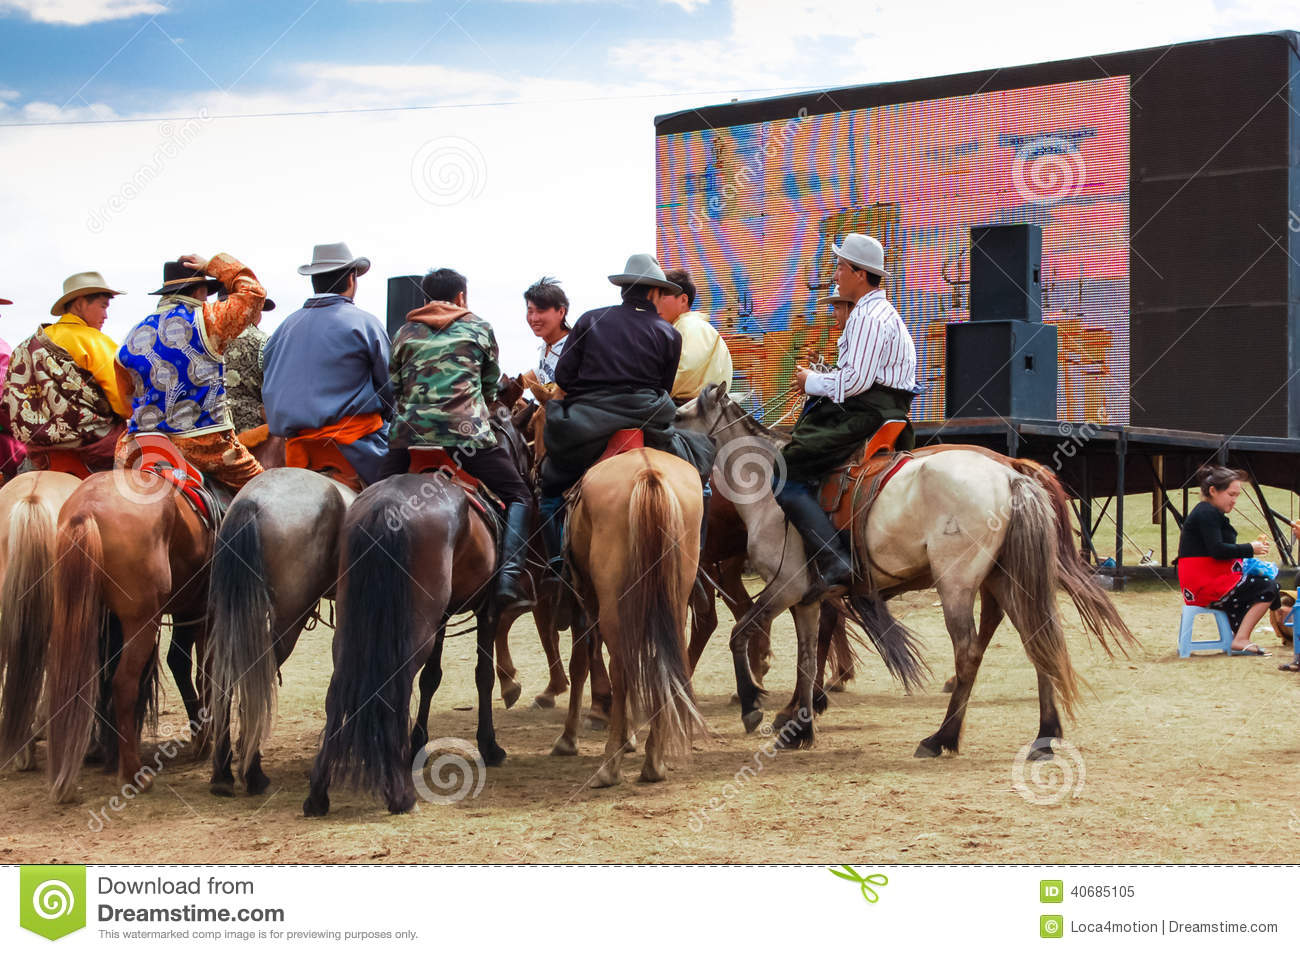 horseback-spectators-front-screen-nadaam